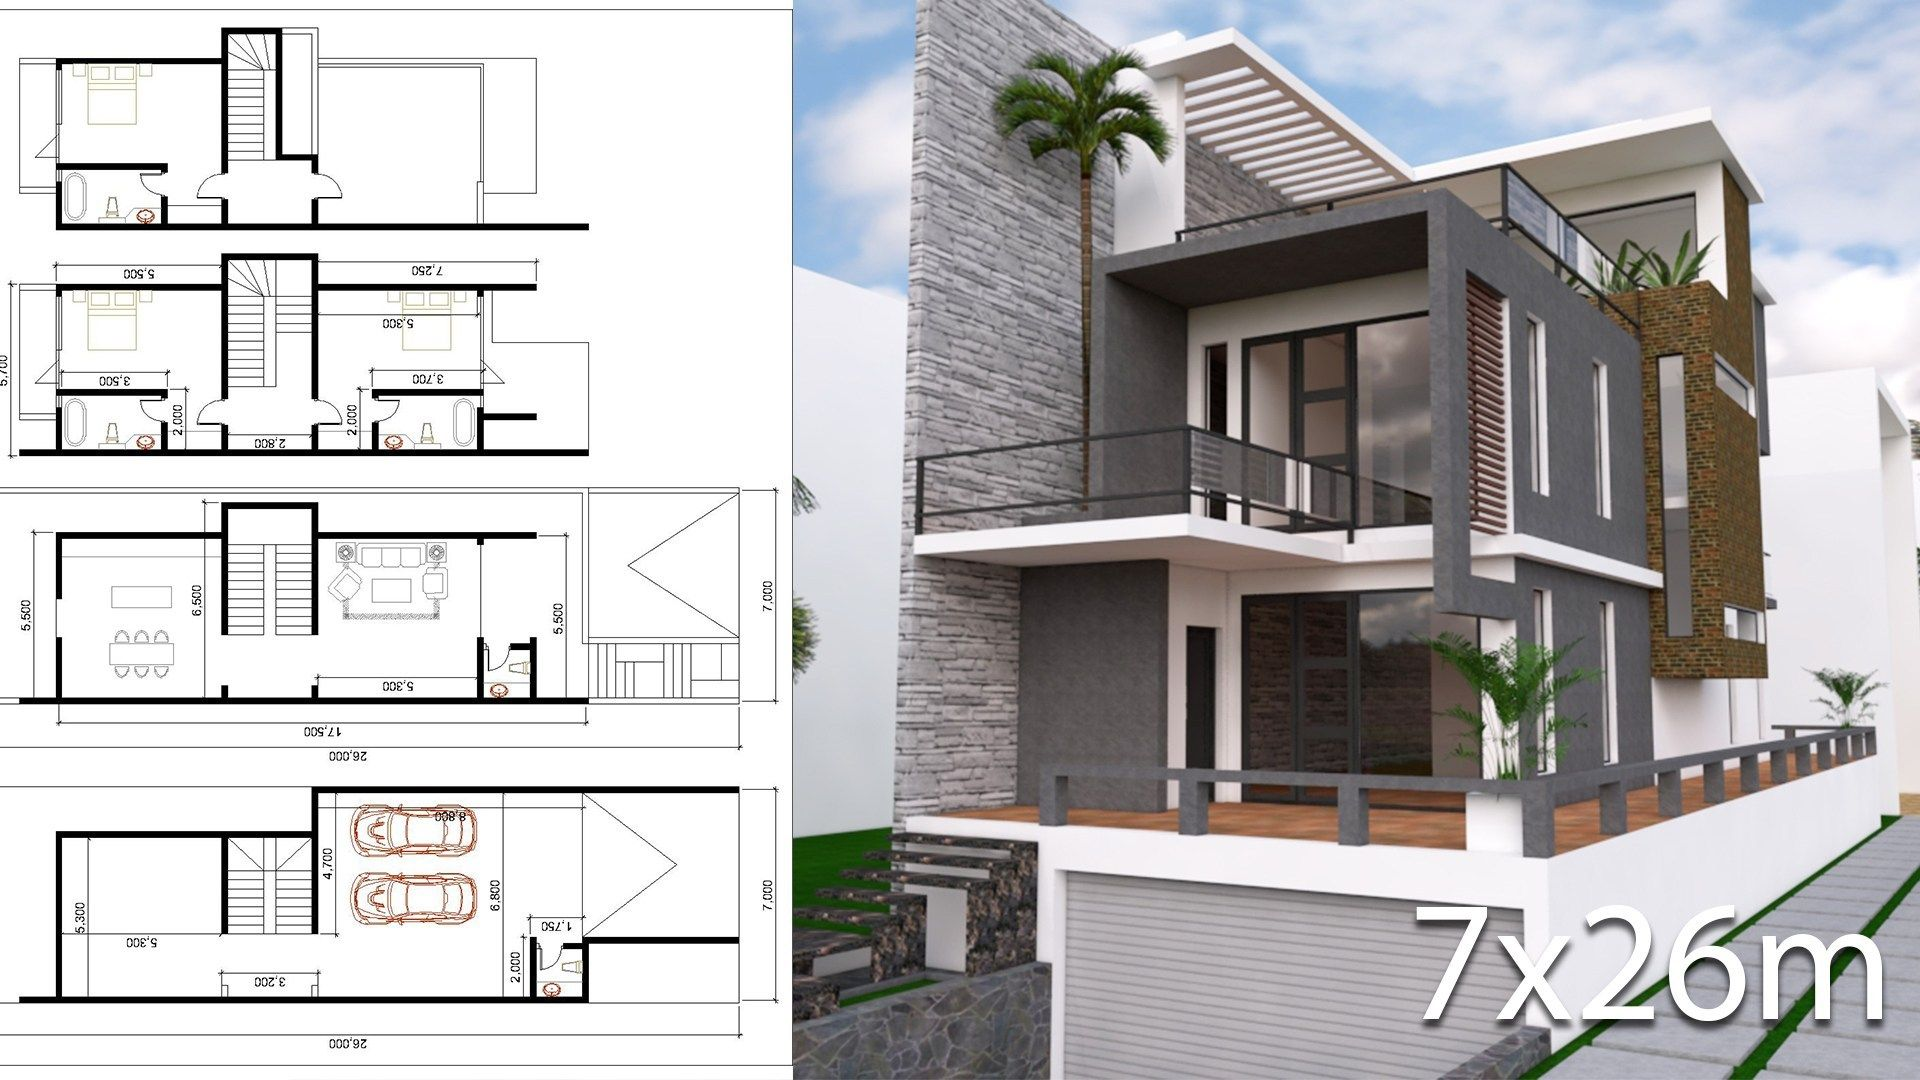 Modern House Plans With Land Size 7mx26m Samphoas Plan Modern House Plans House Plans House Design